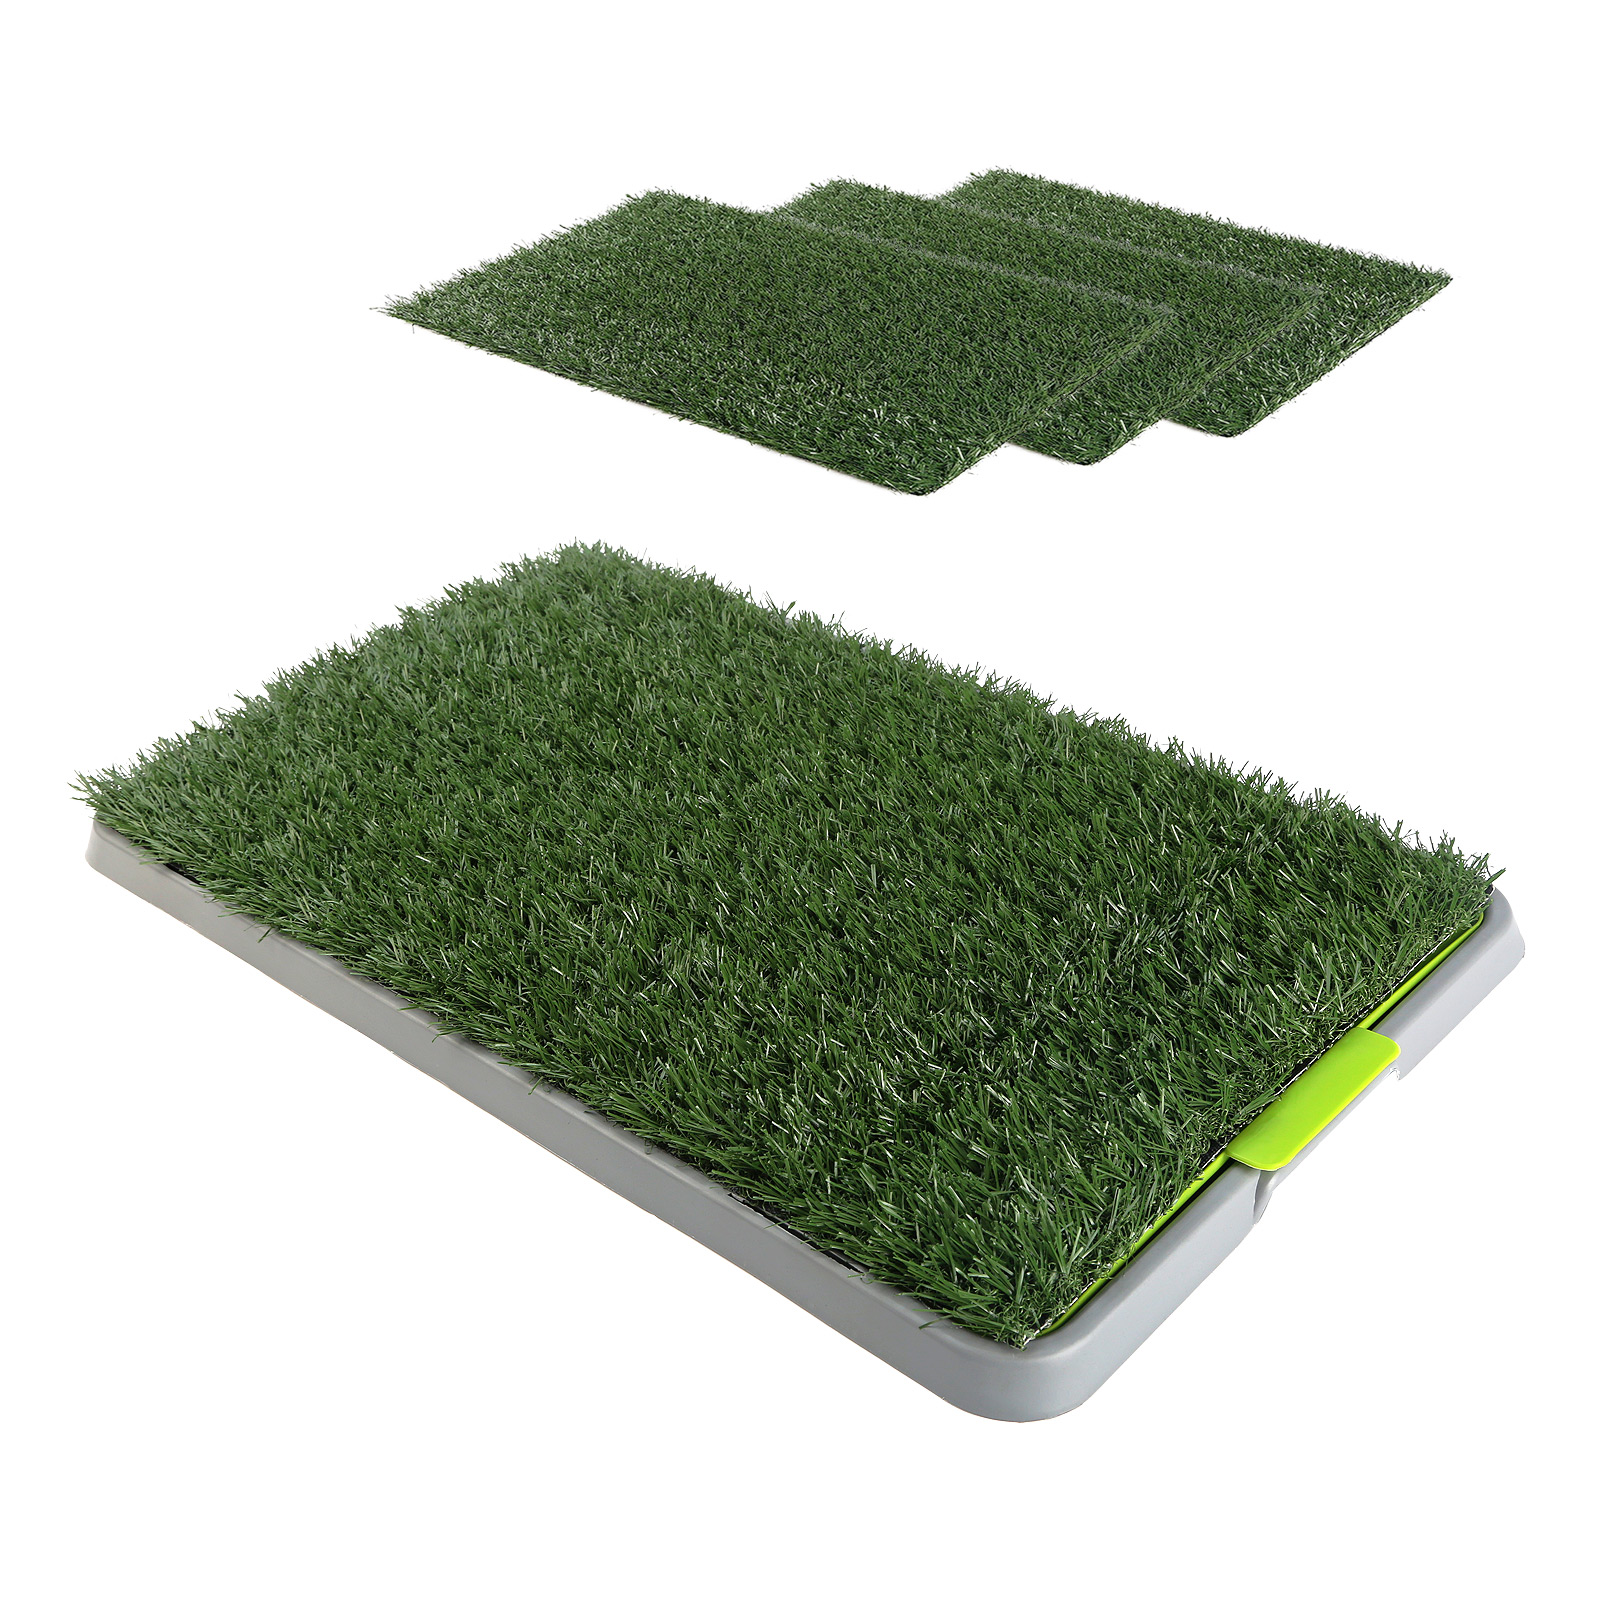 Pet Potty Training Pad Tray 69 x 43cm - 4 Grass Mat